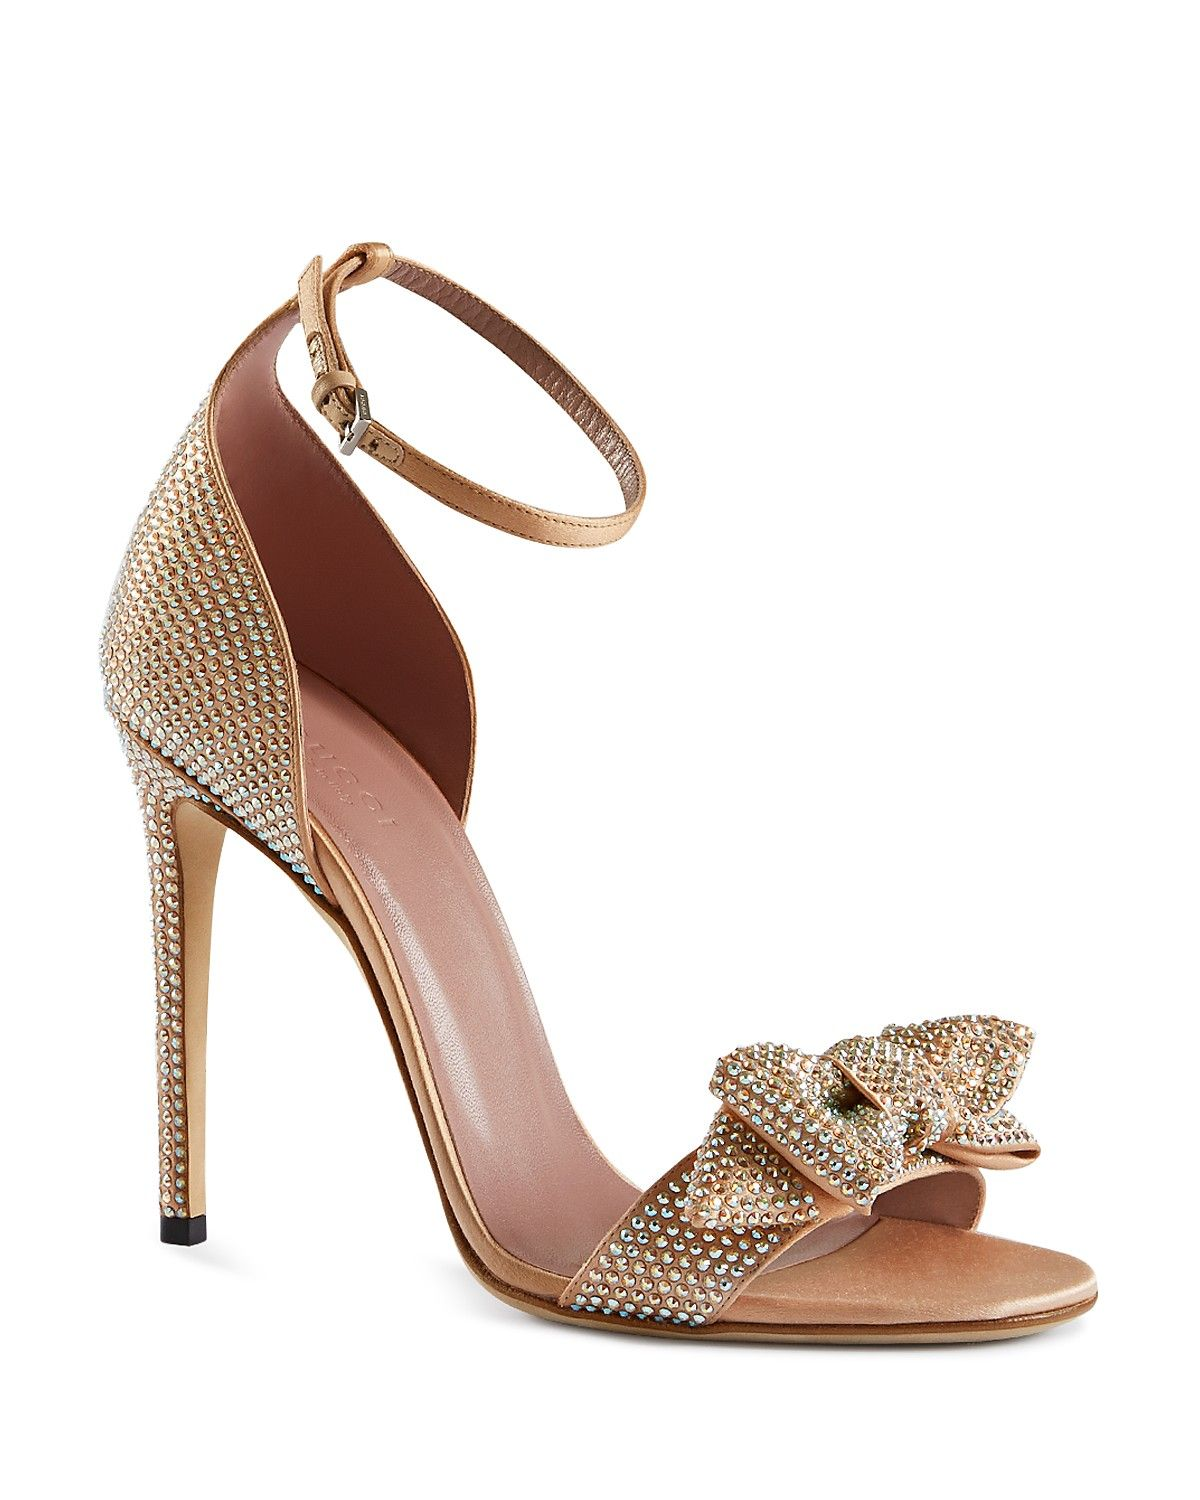 Gucci Evening Sandals - Clodine Bow | Bloomingdale's